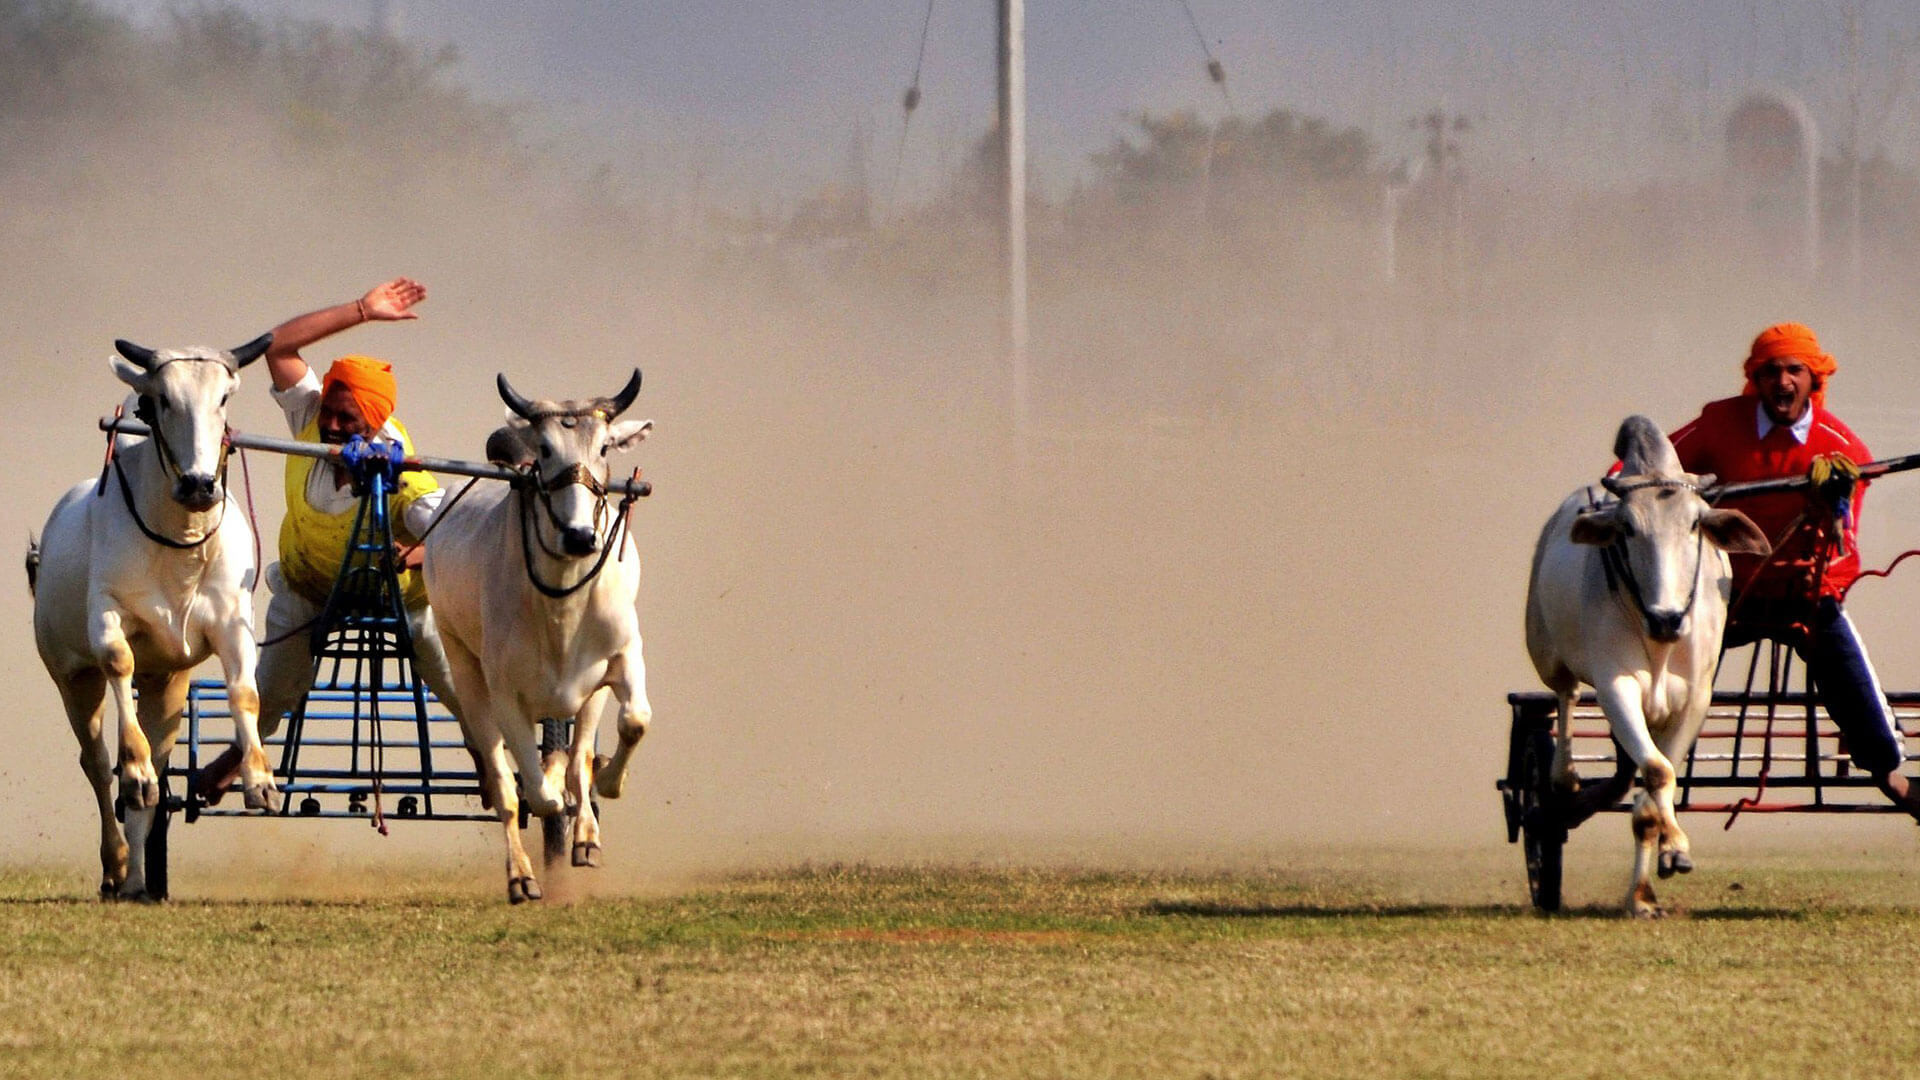 Bull Racing at Kila Raipur Sports Festival, Punjab